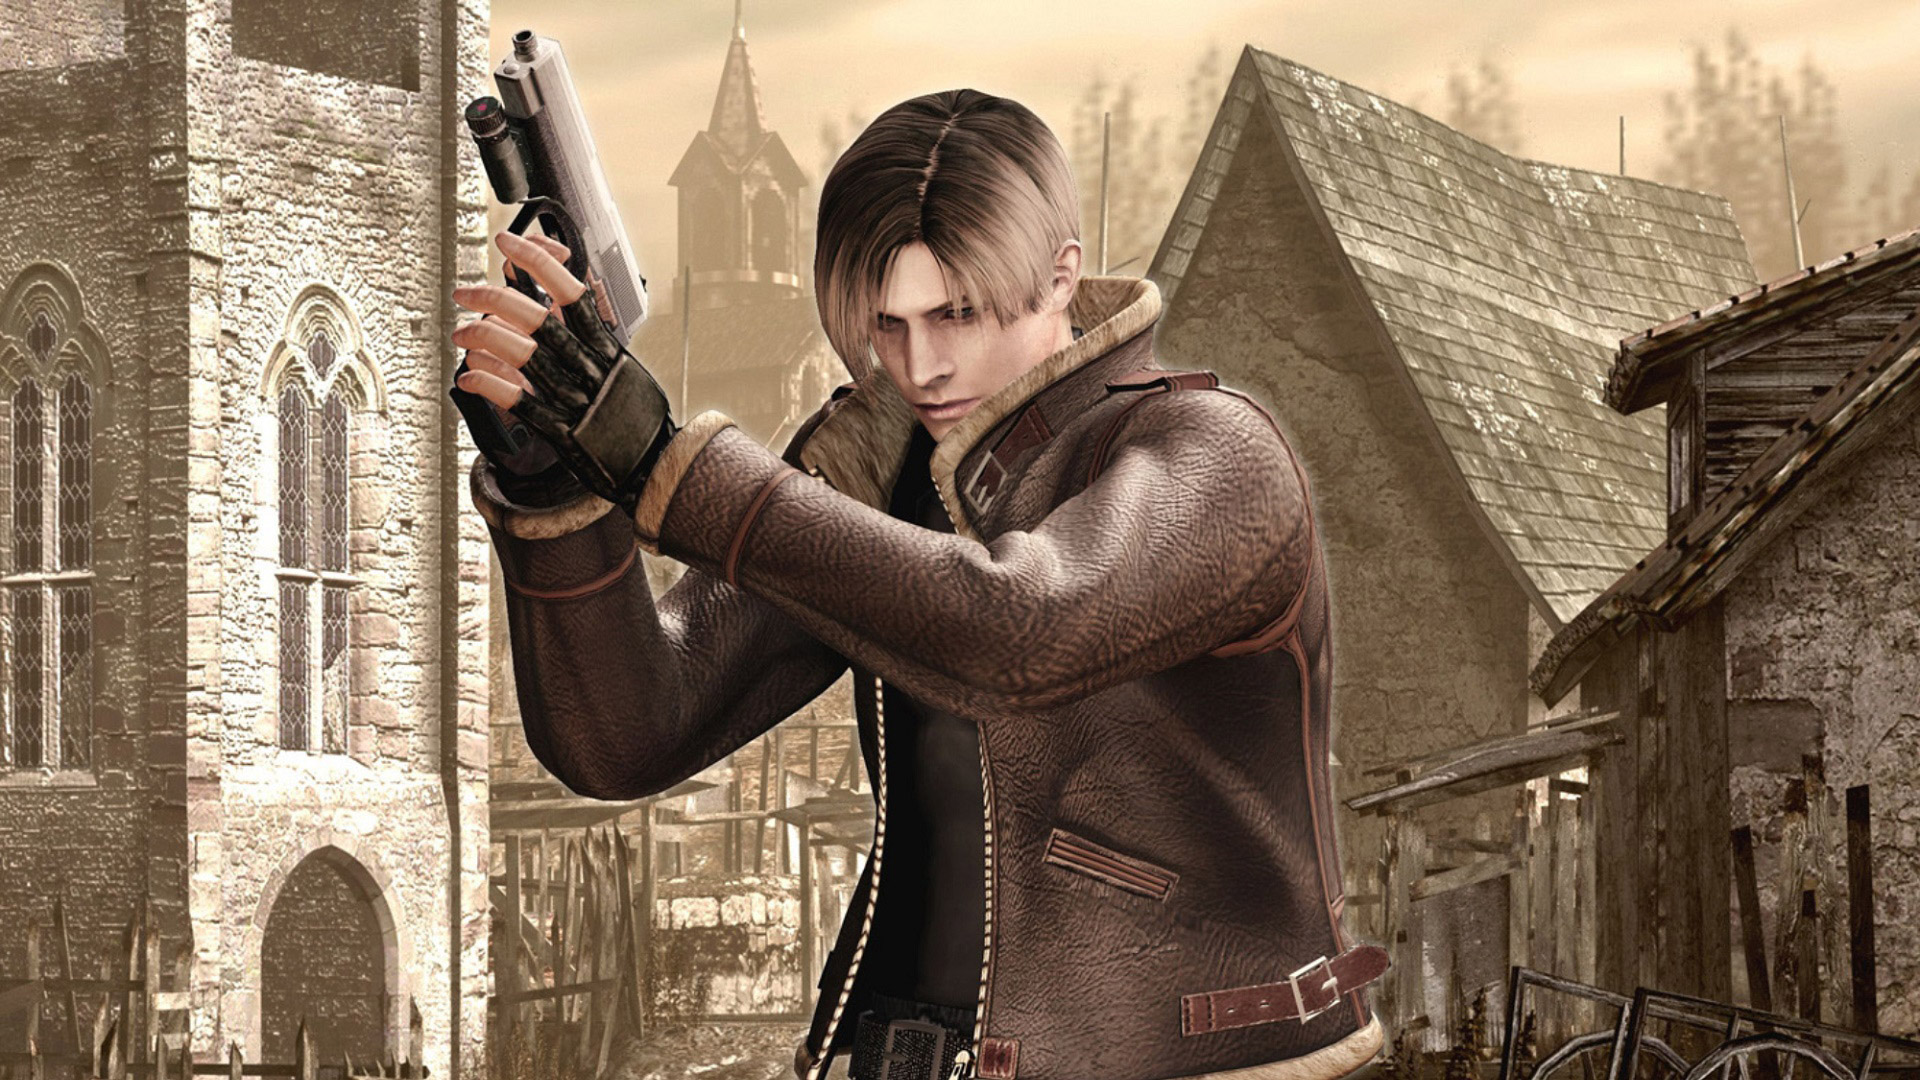 Resident Evil 4 Hd Wallpaper Background Image 1920x1080 Id